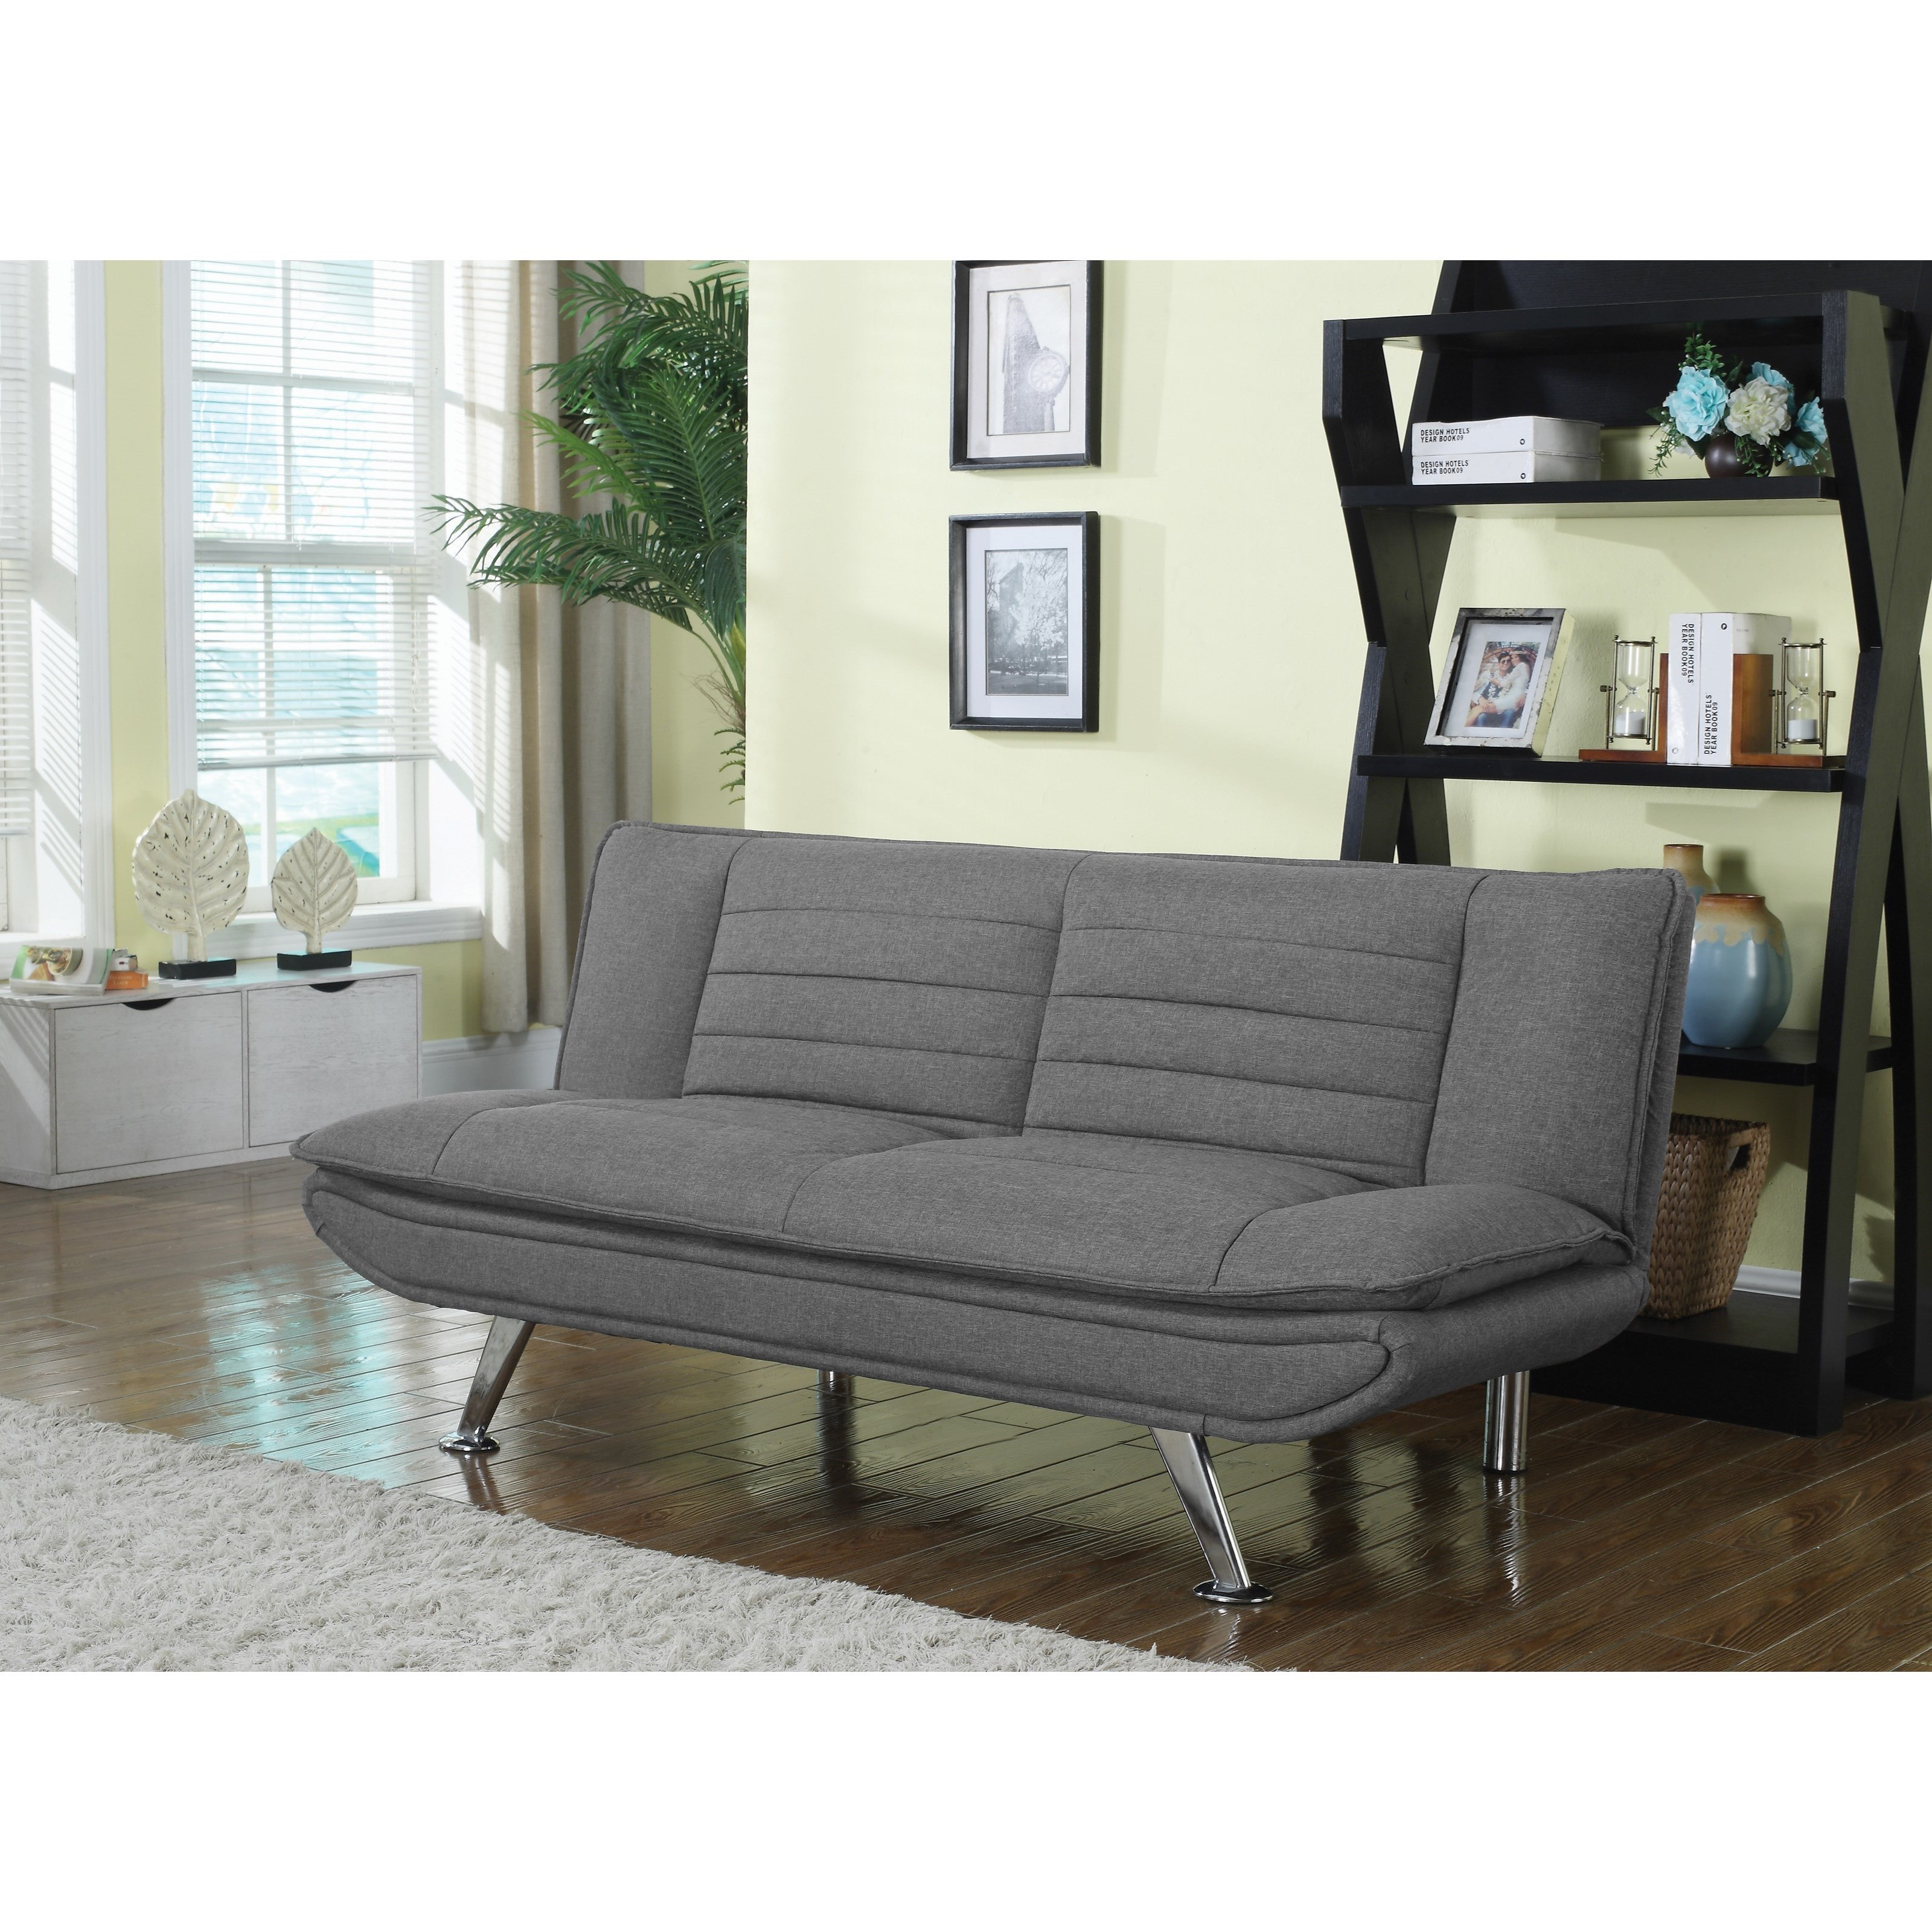 Futons Sofa Bed by Coaster at Value City Furniture